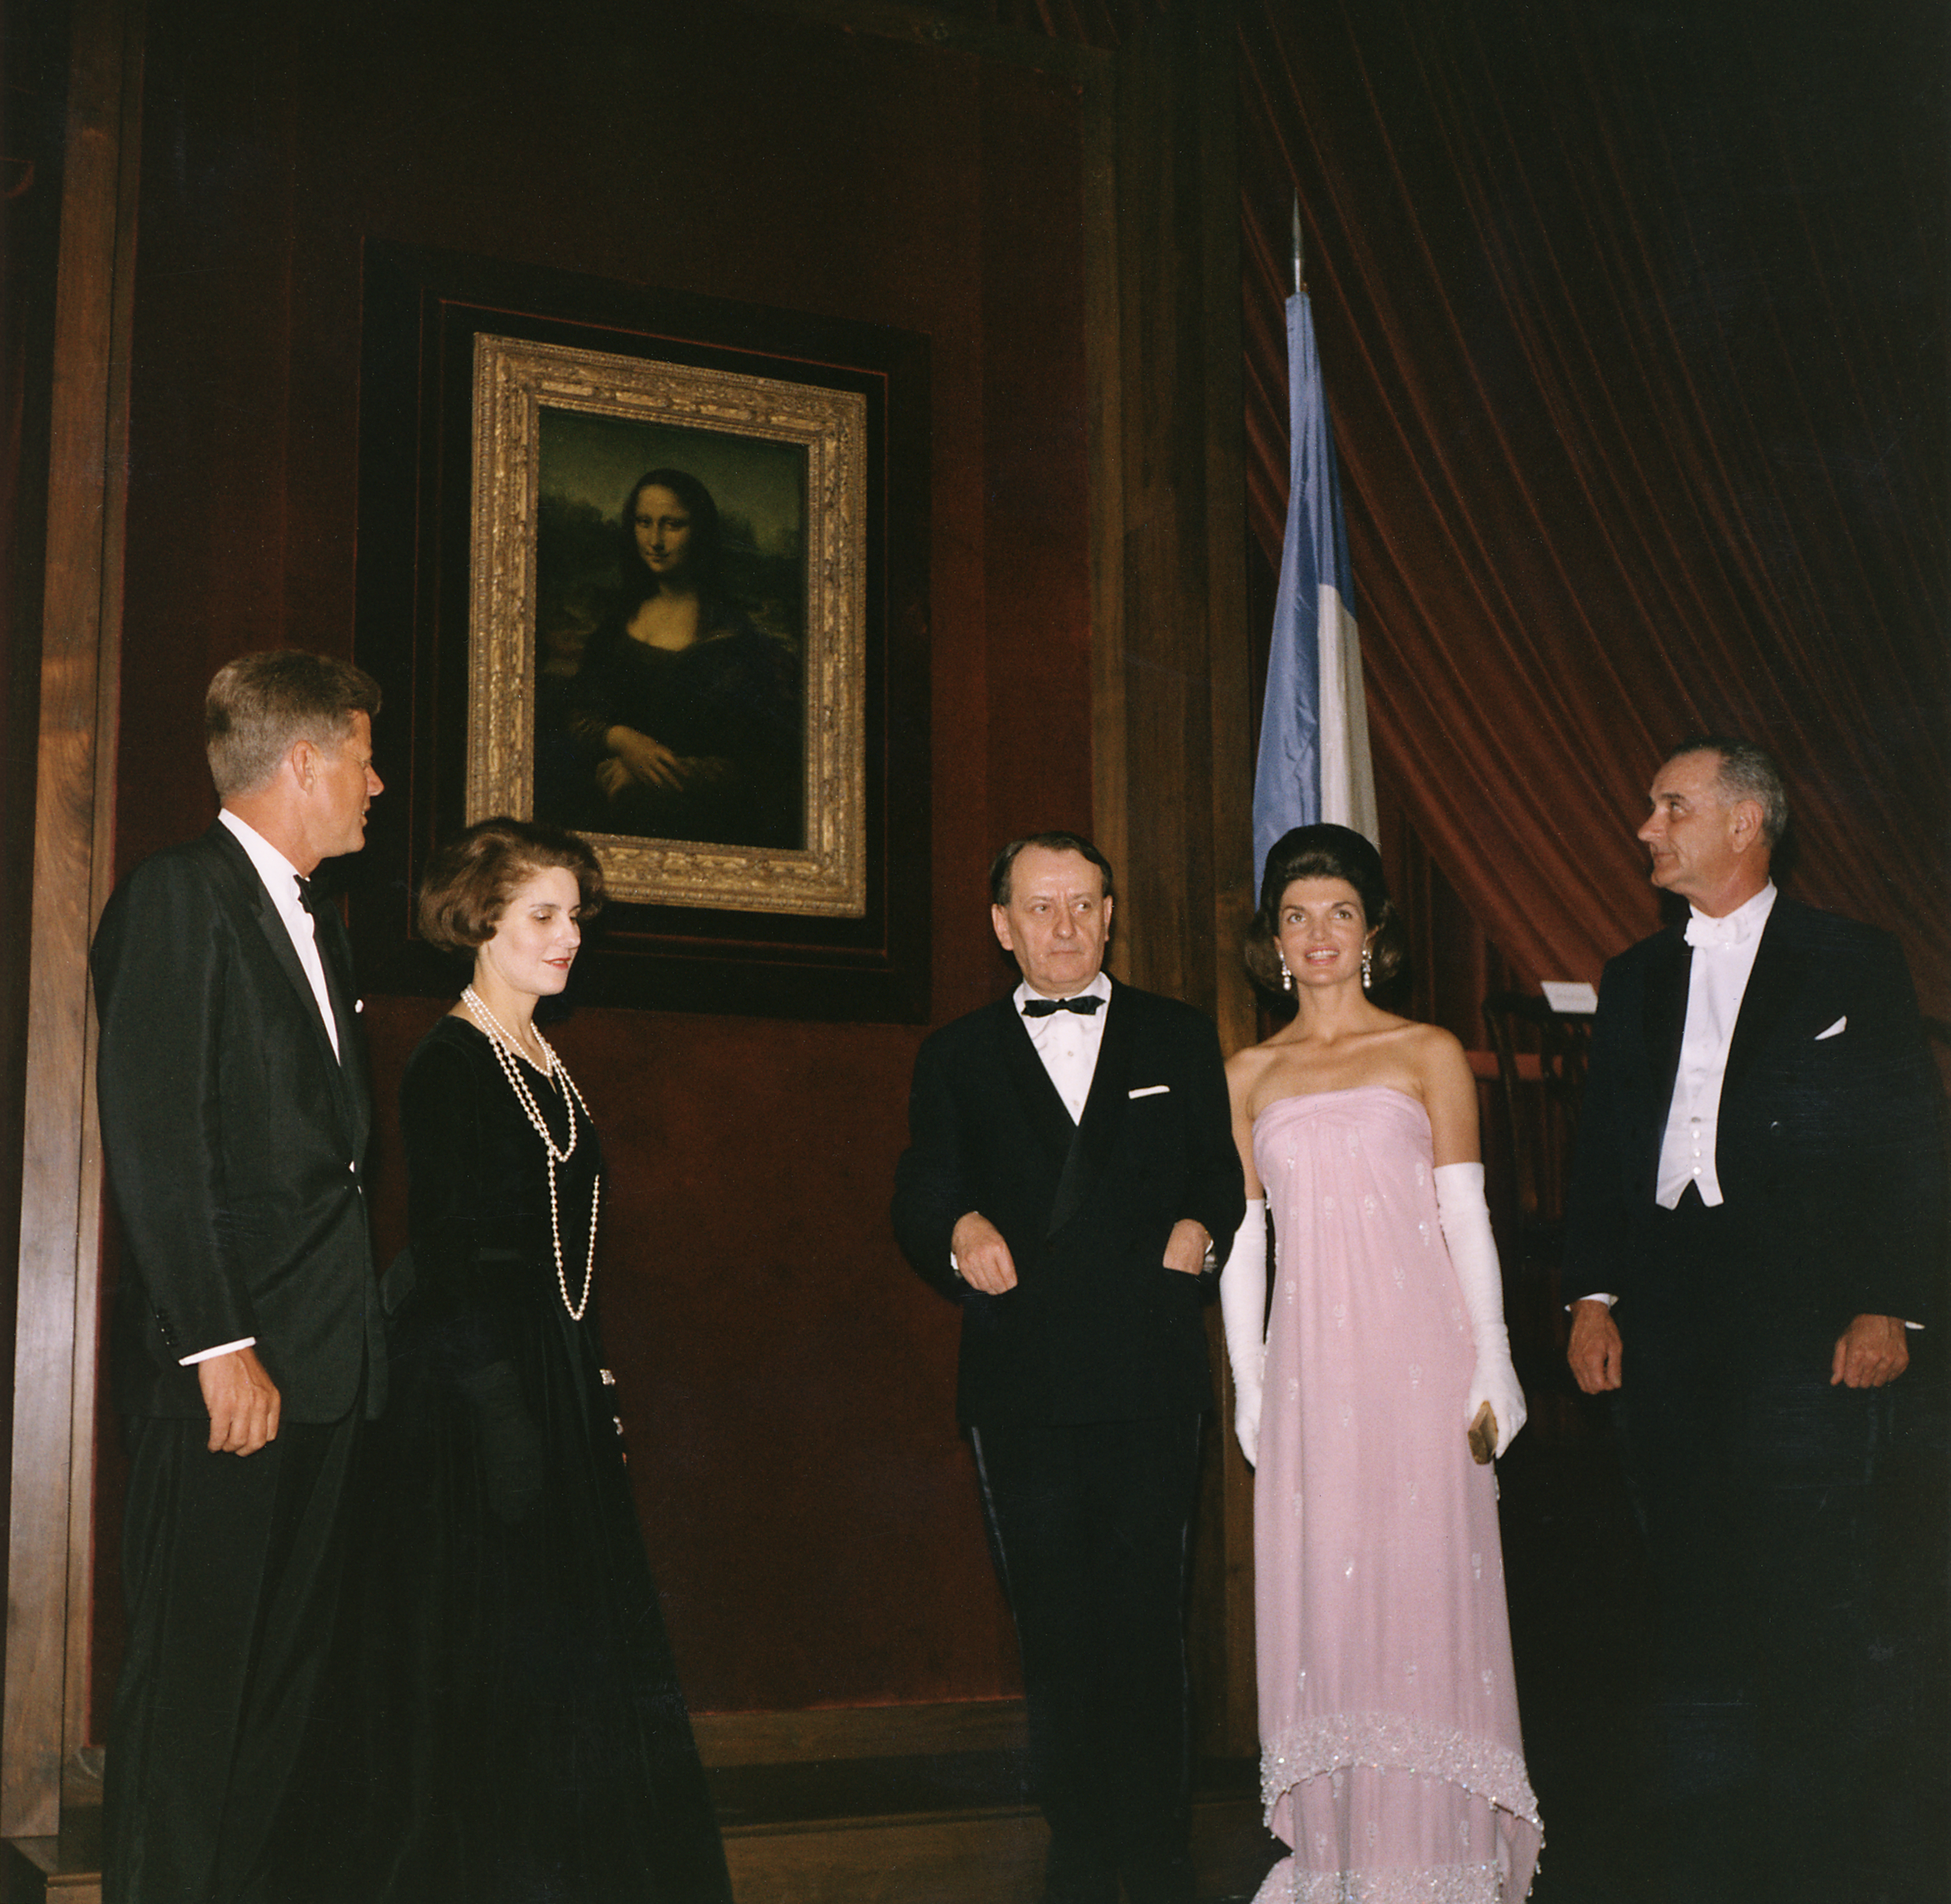 Andre Malraux, center, with John F. Kennedy, Malraux's third wife Madeleine, Jacqueline Kennedy and Lyndon B. Johnson (via    Wikipedia   )